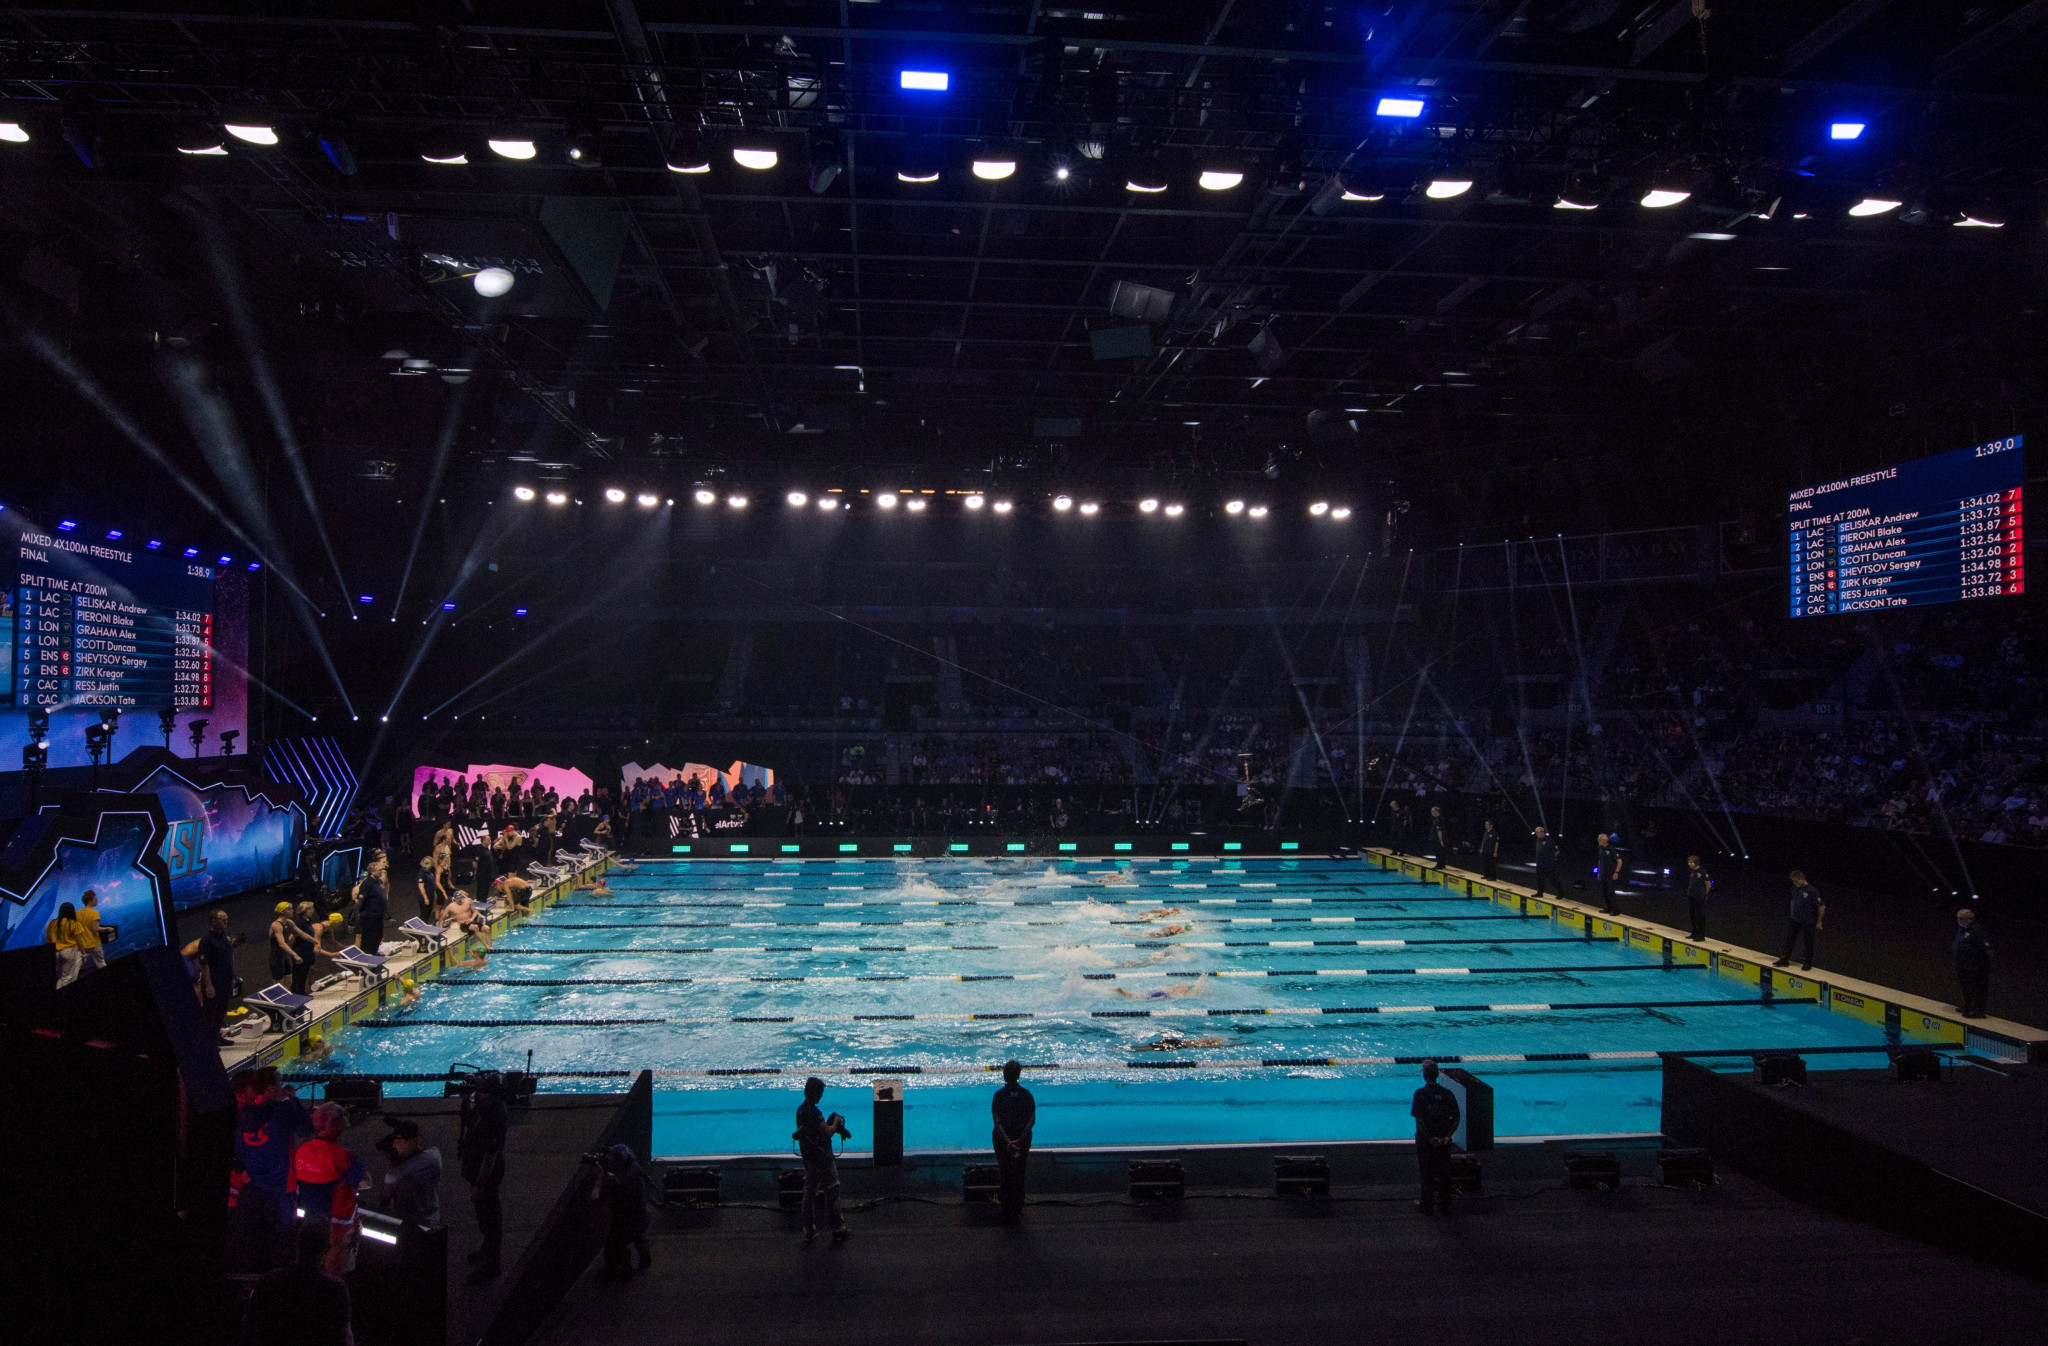 International Swimming League returns with revamped format and five-week schedule in Budapest